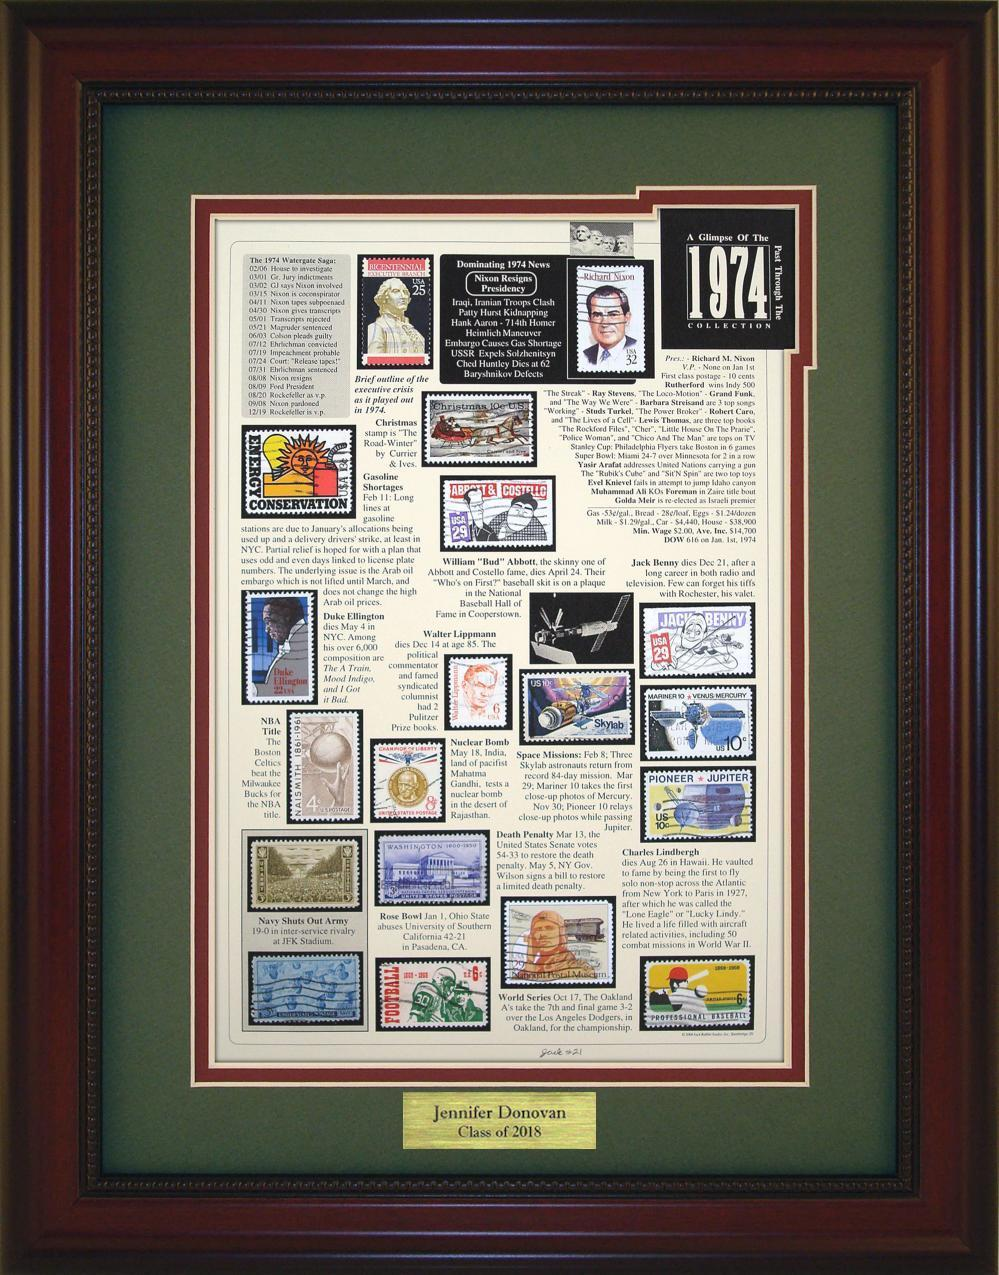 Year 1974 - Personalized Unique Framed Gift